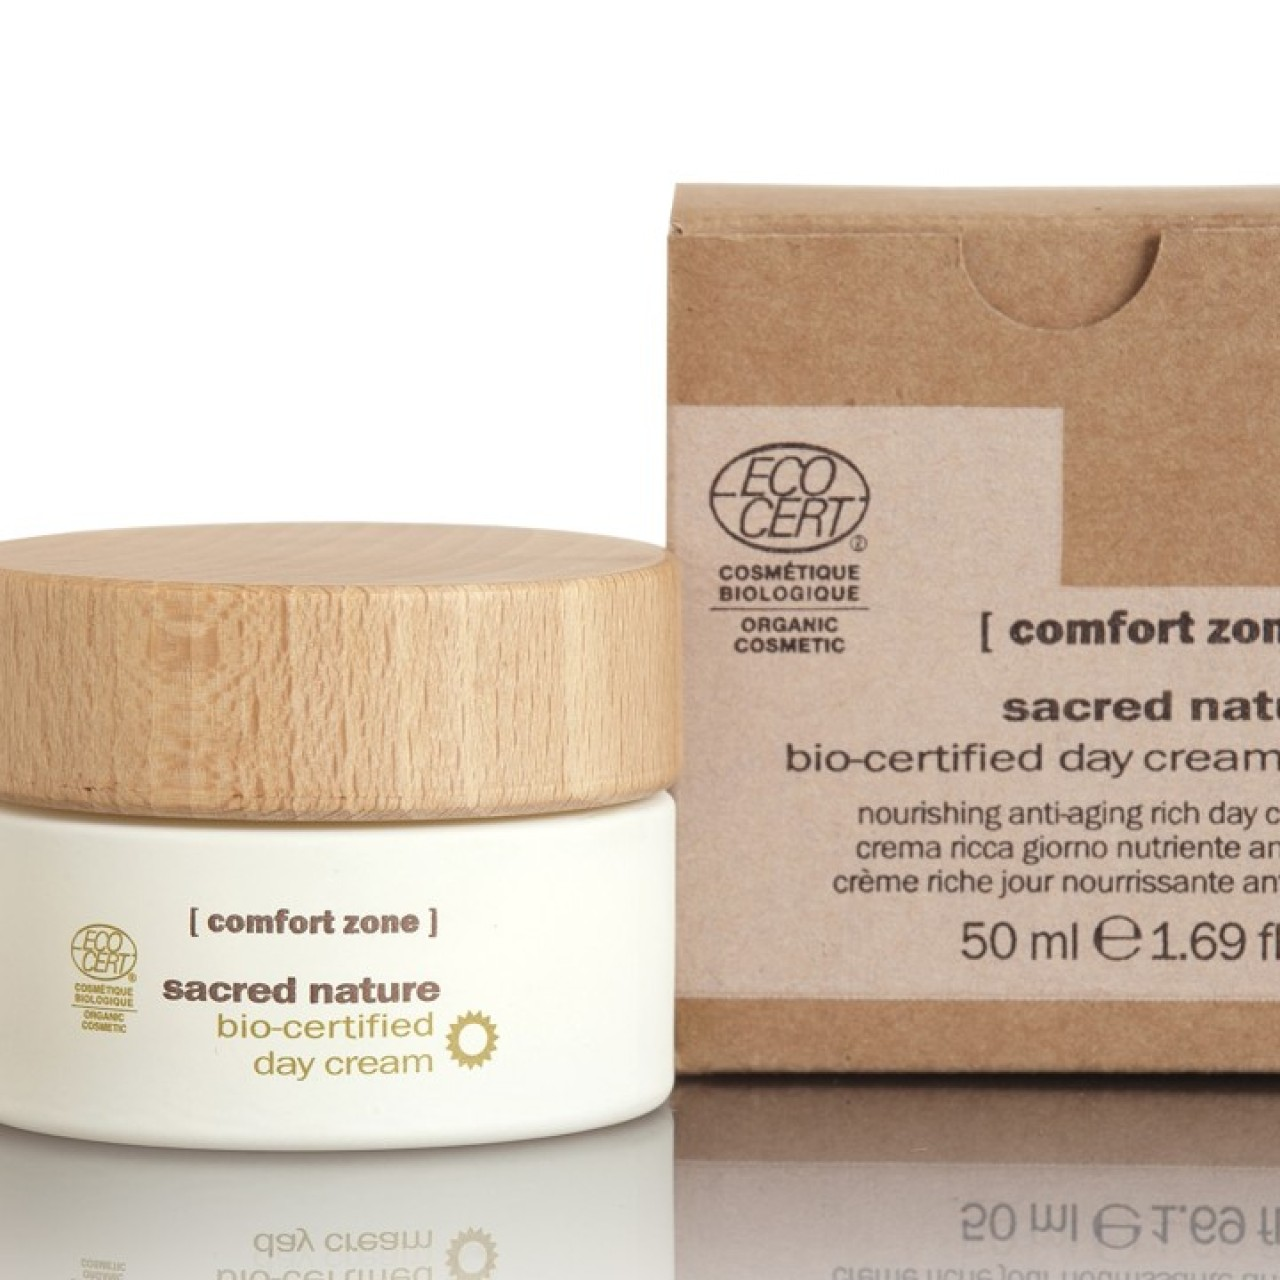 Five ethical beauty brands for millennials who shop with a